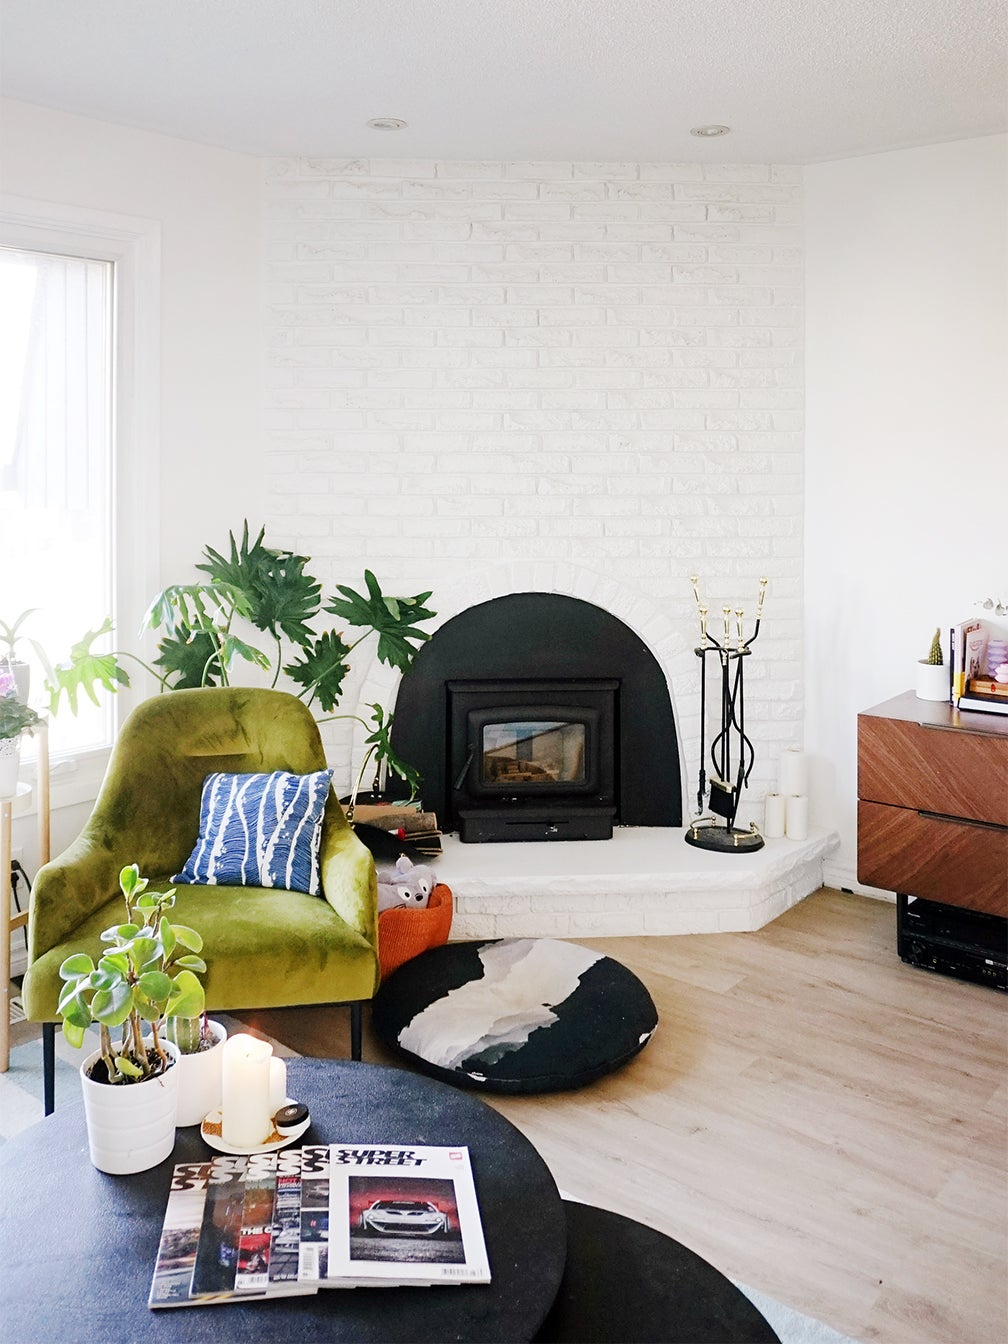 fireplace plinth in mid century style livign room